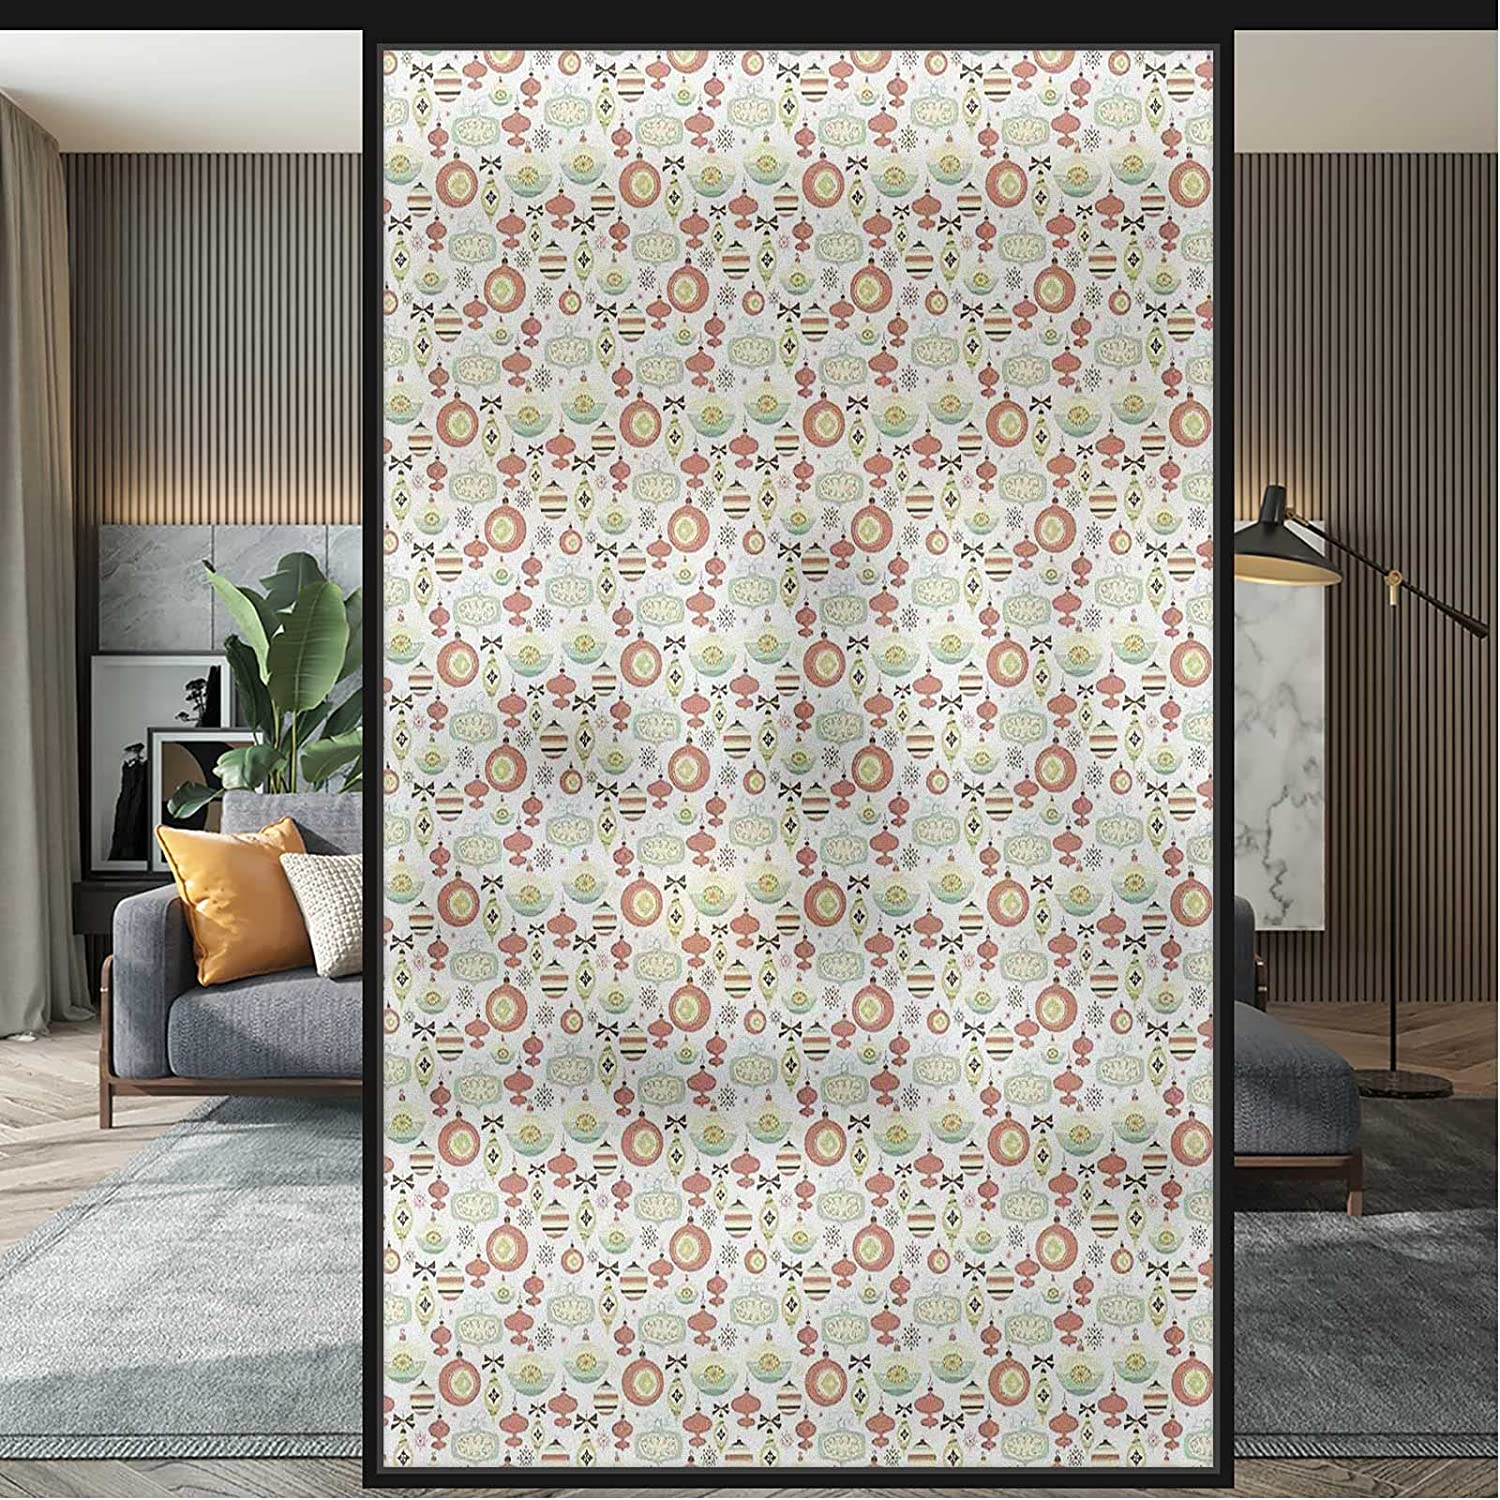 Cheap bargain Privacy Glass Brand Cheap Sale Venue Window Films Balls Doodle Covering Hanging